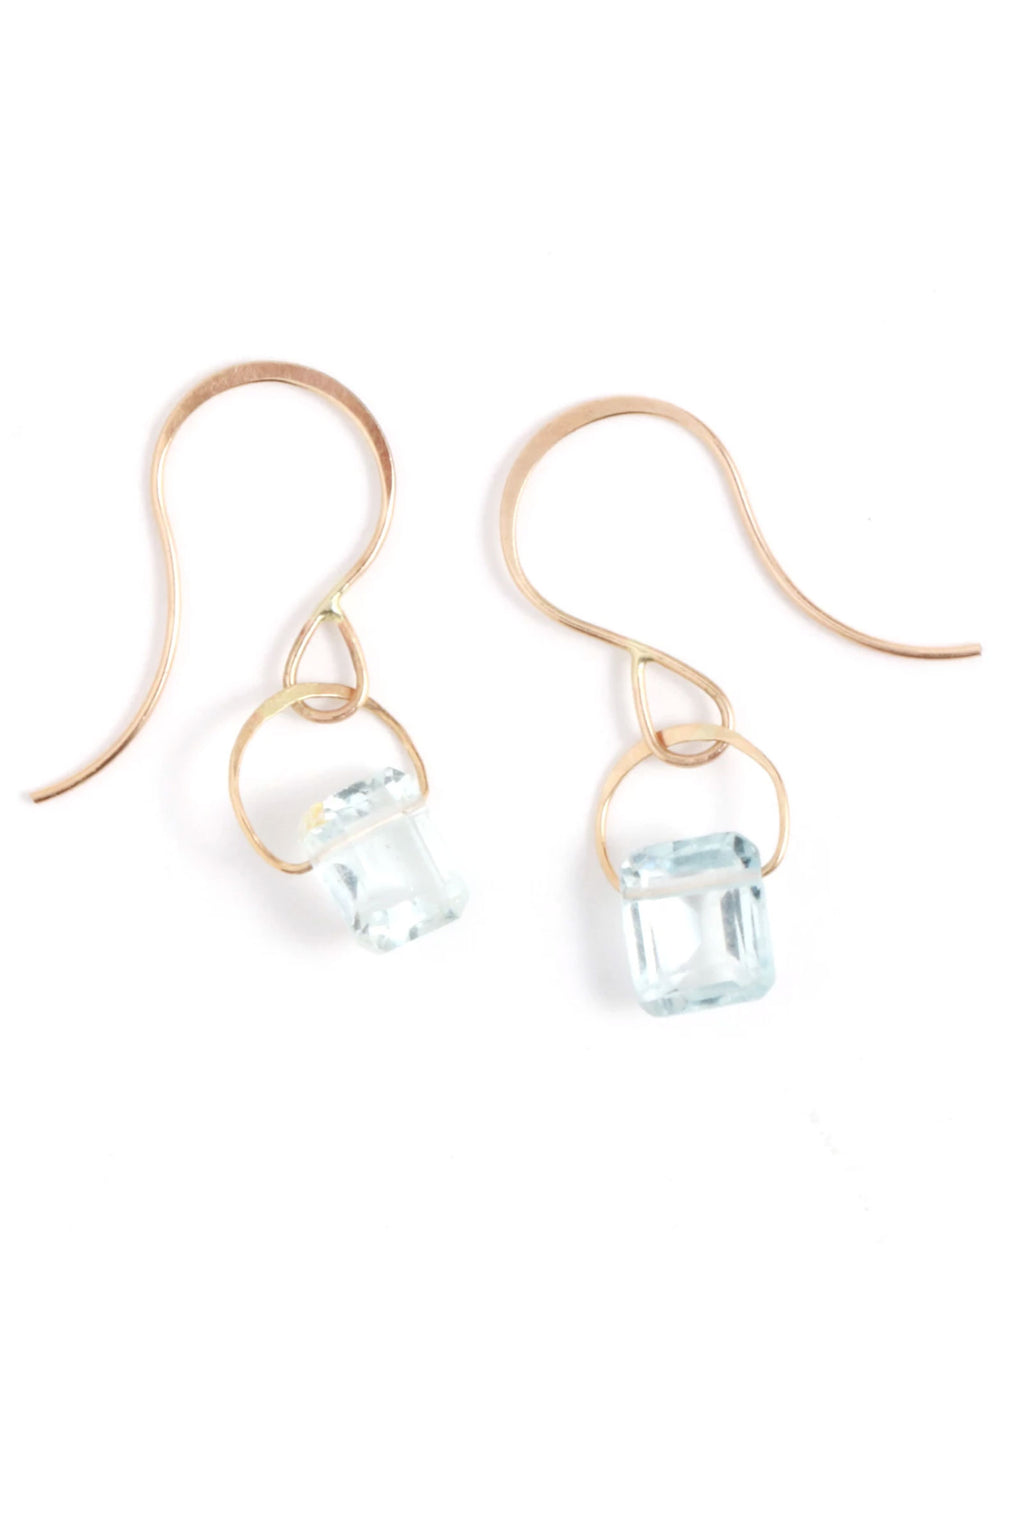 Melissa Joy Manning 14k Gold Emerald Cut Aquamarine Drop Earrings